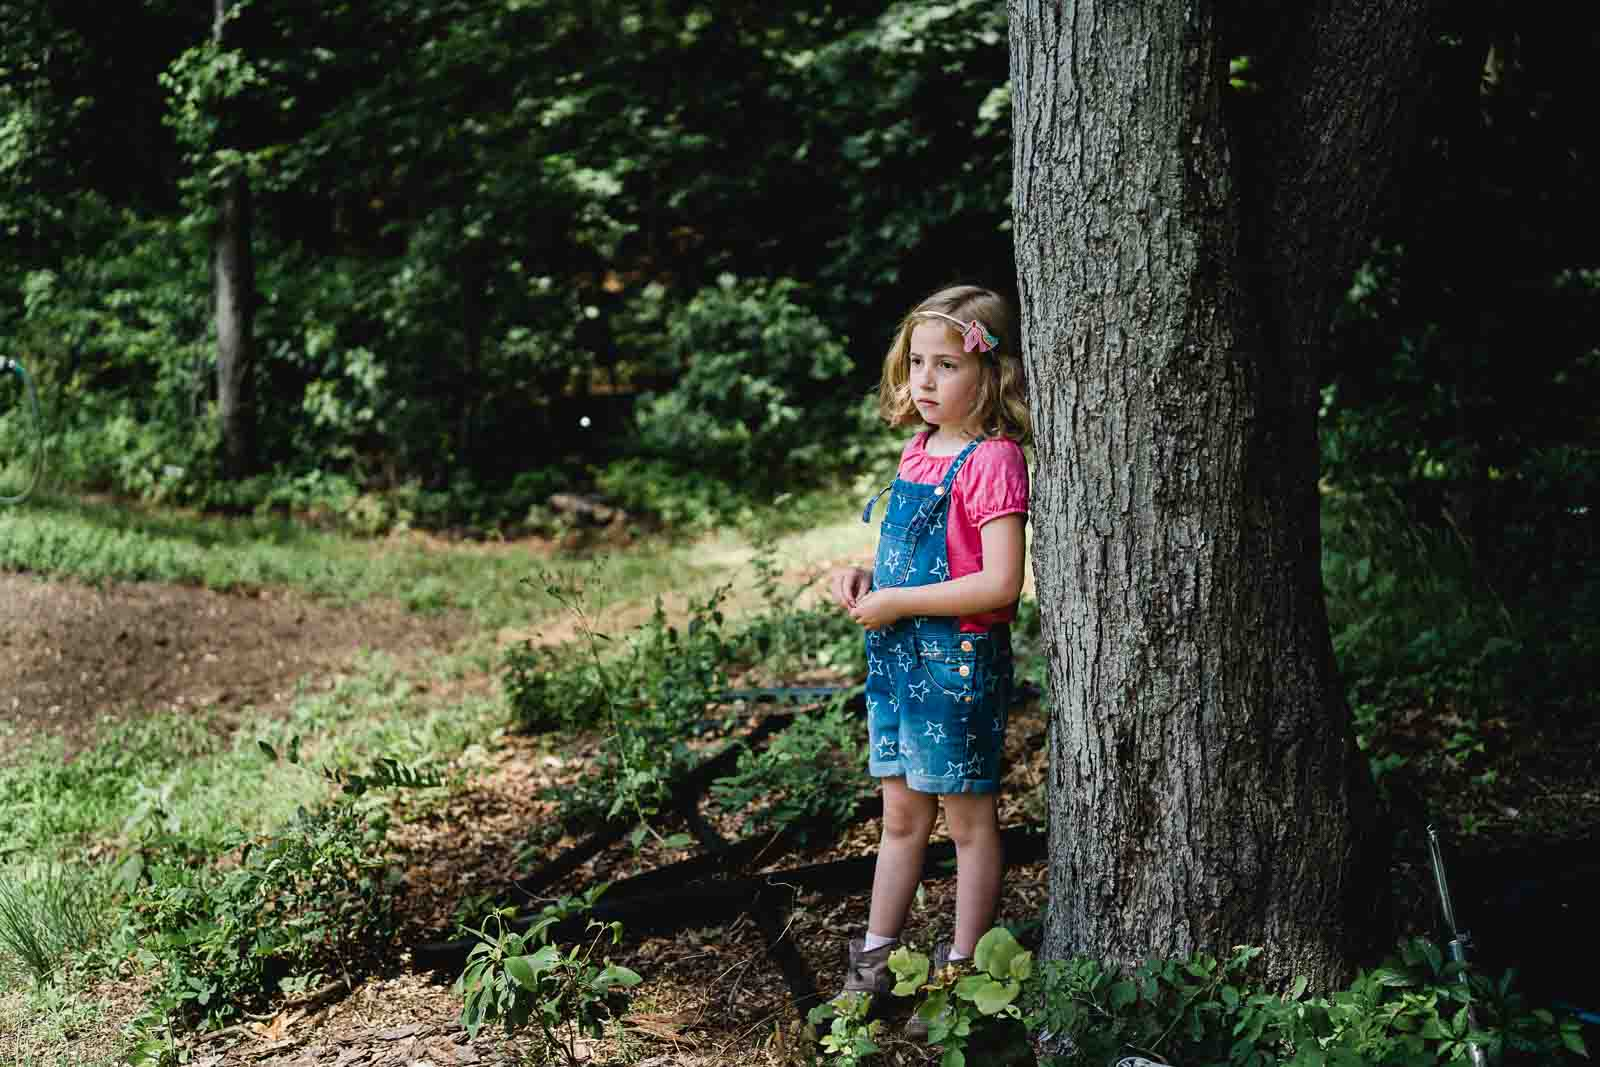 Pro review of the Zeiss Batis 40mm lens - outdoor photo of a girl